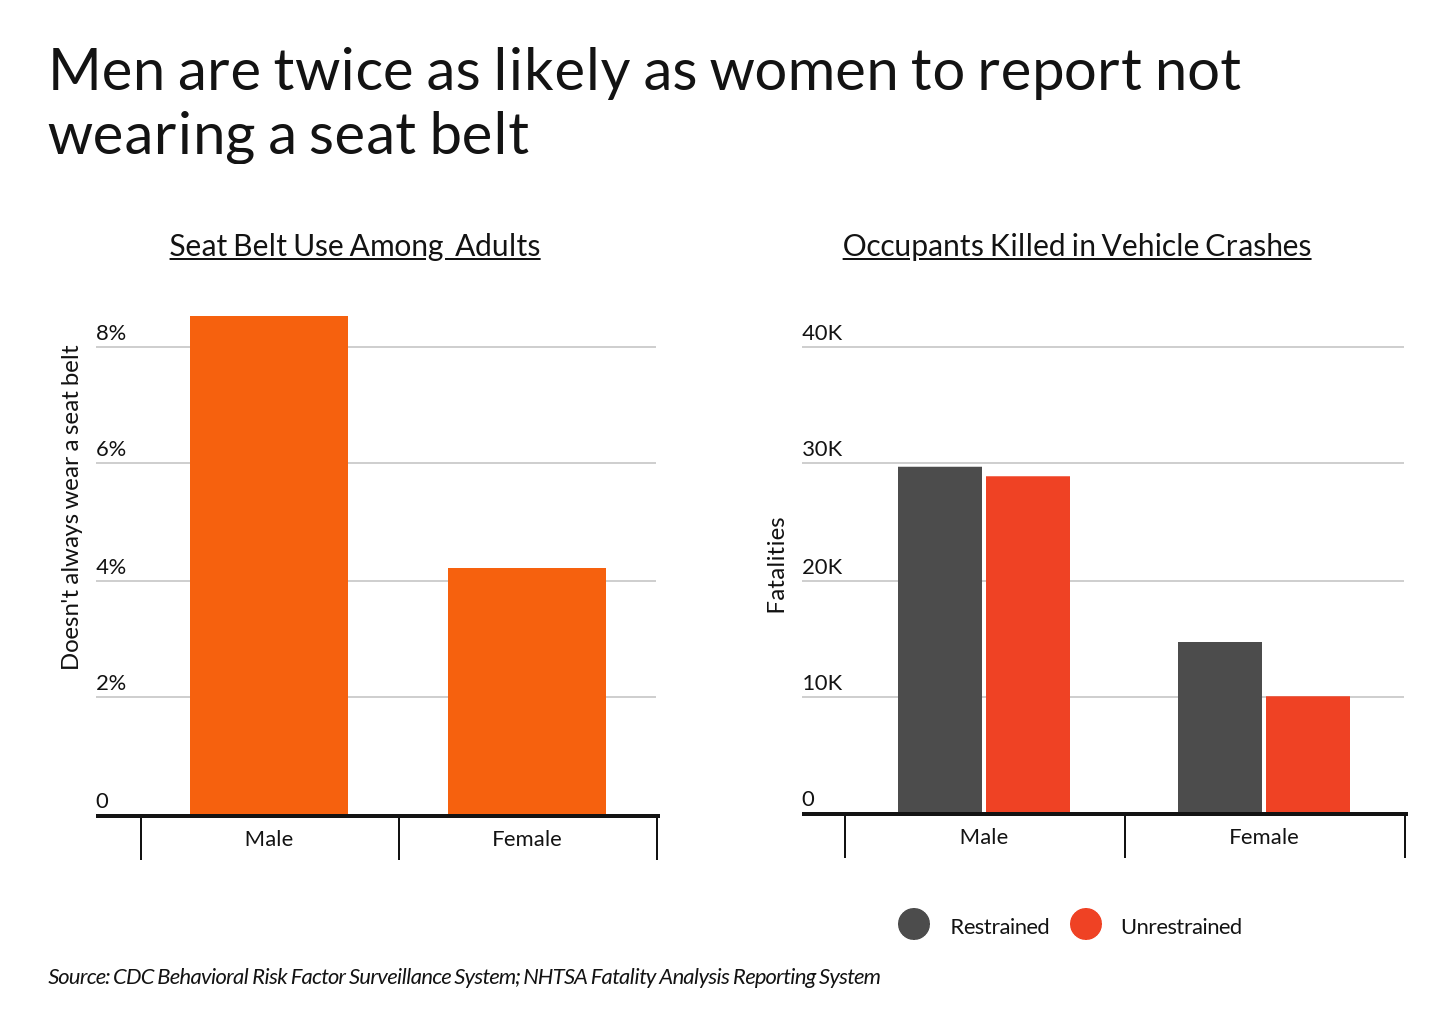 Bar graphs showing that men are twice as likely not to wear a seatbelt